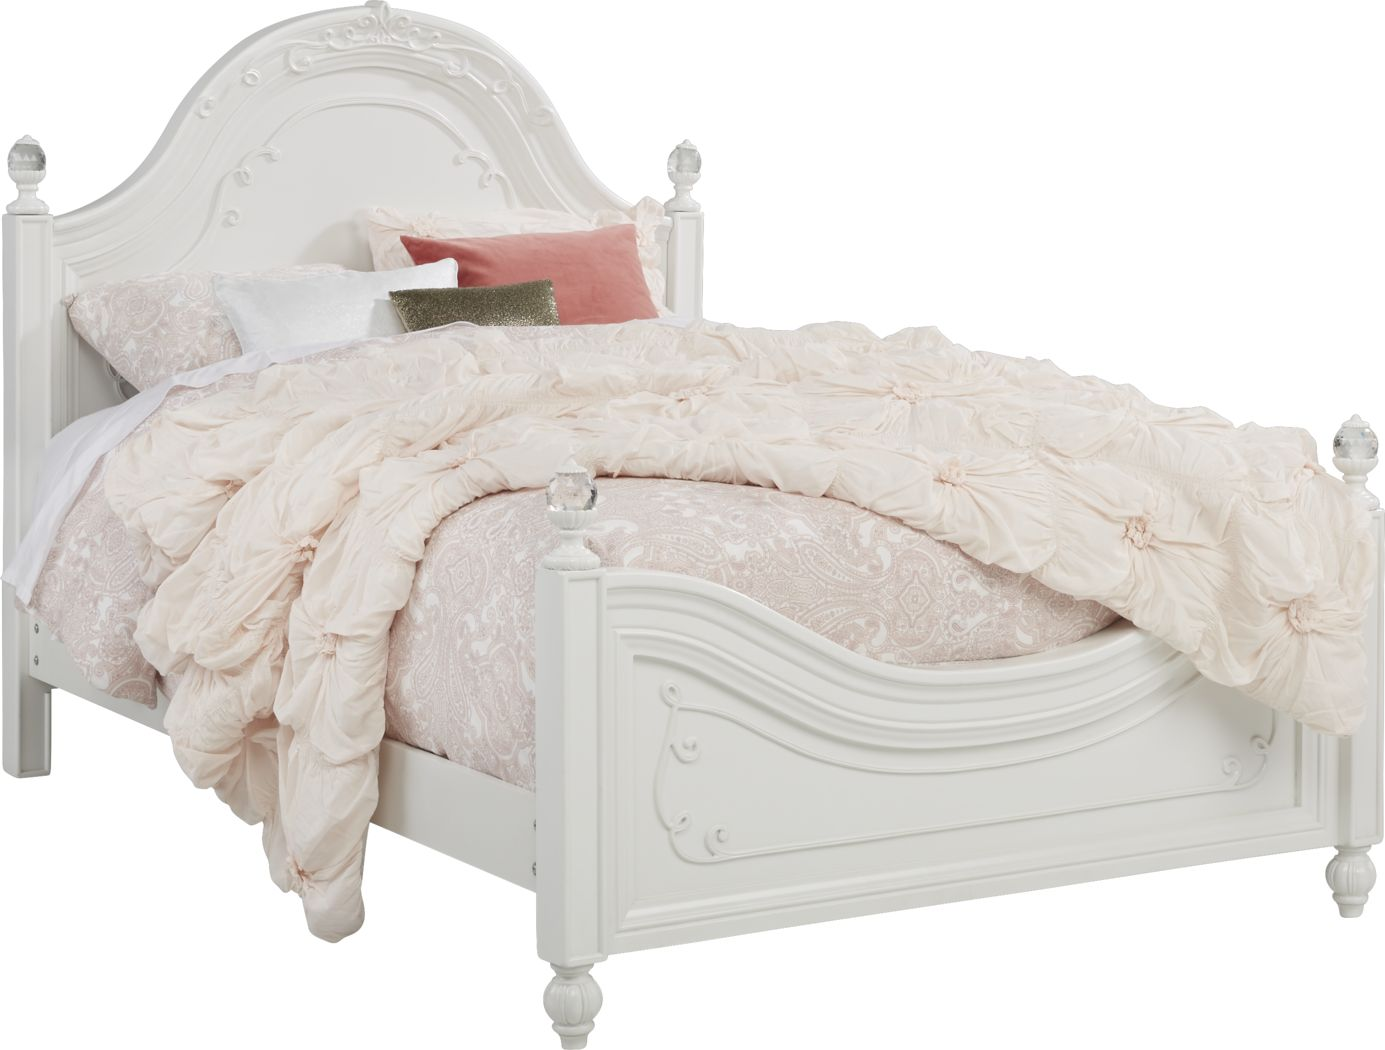 - Disney Princess Beds: Toddler Beds, Cribs, Carriage Beds, Etc.